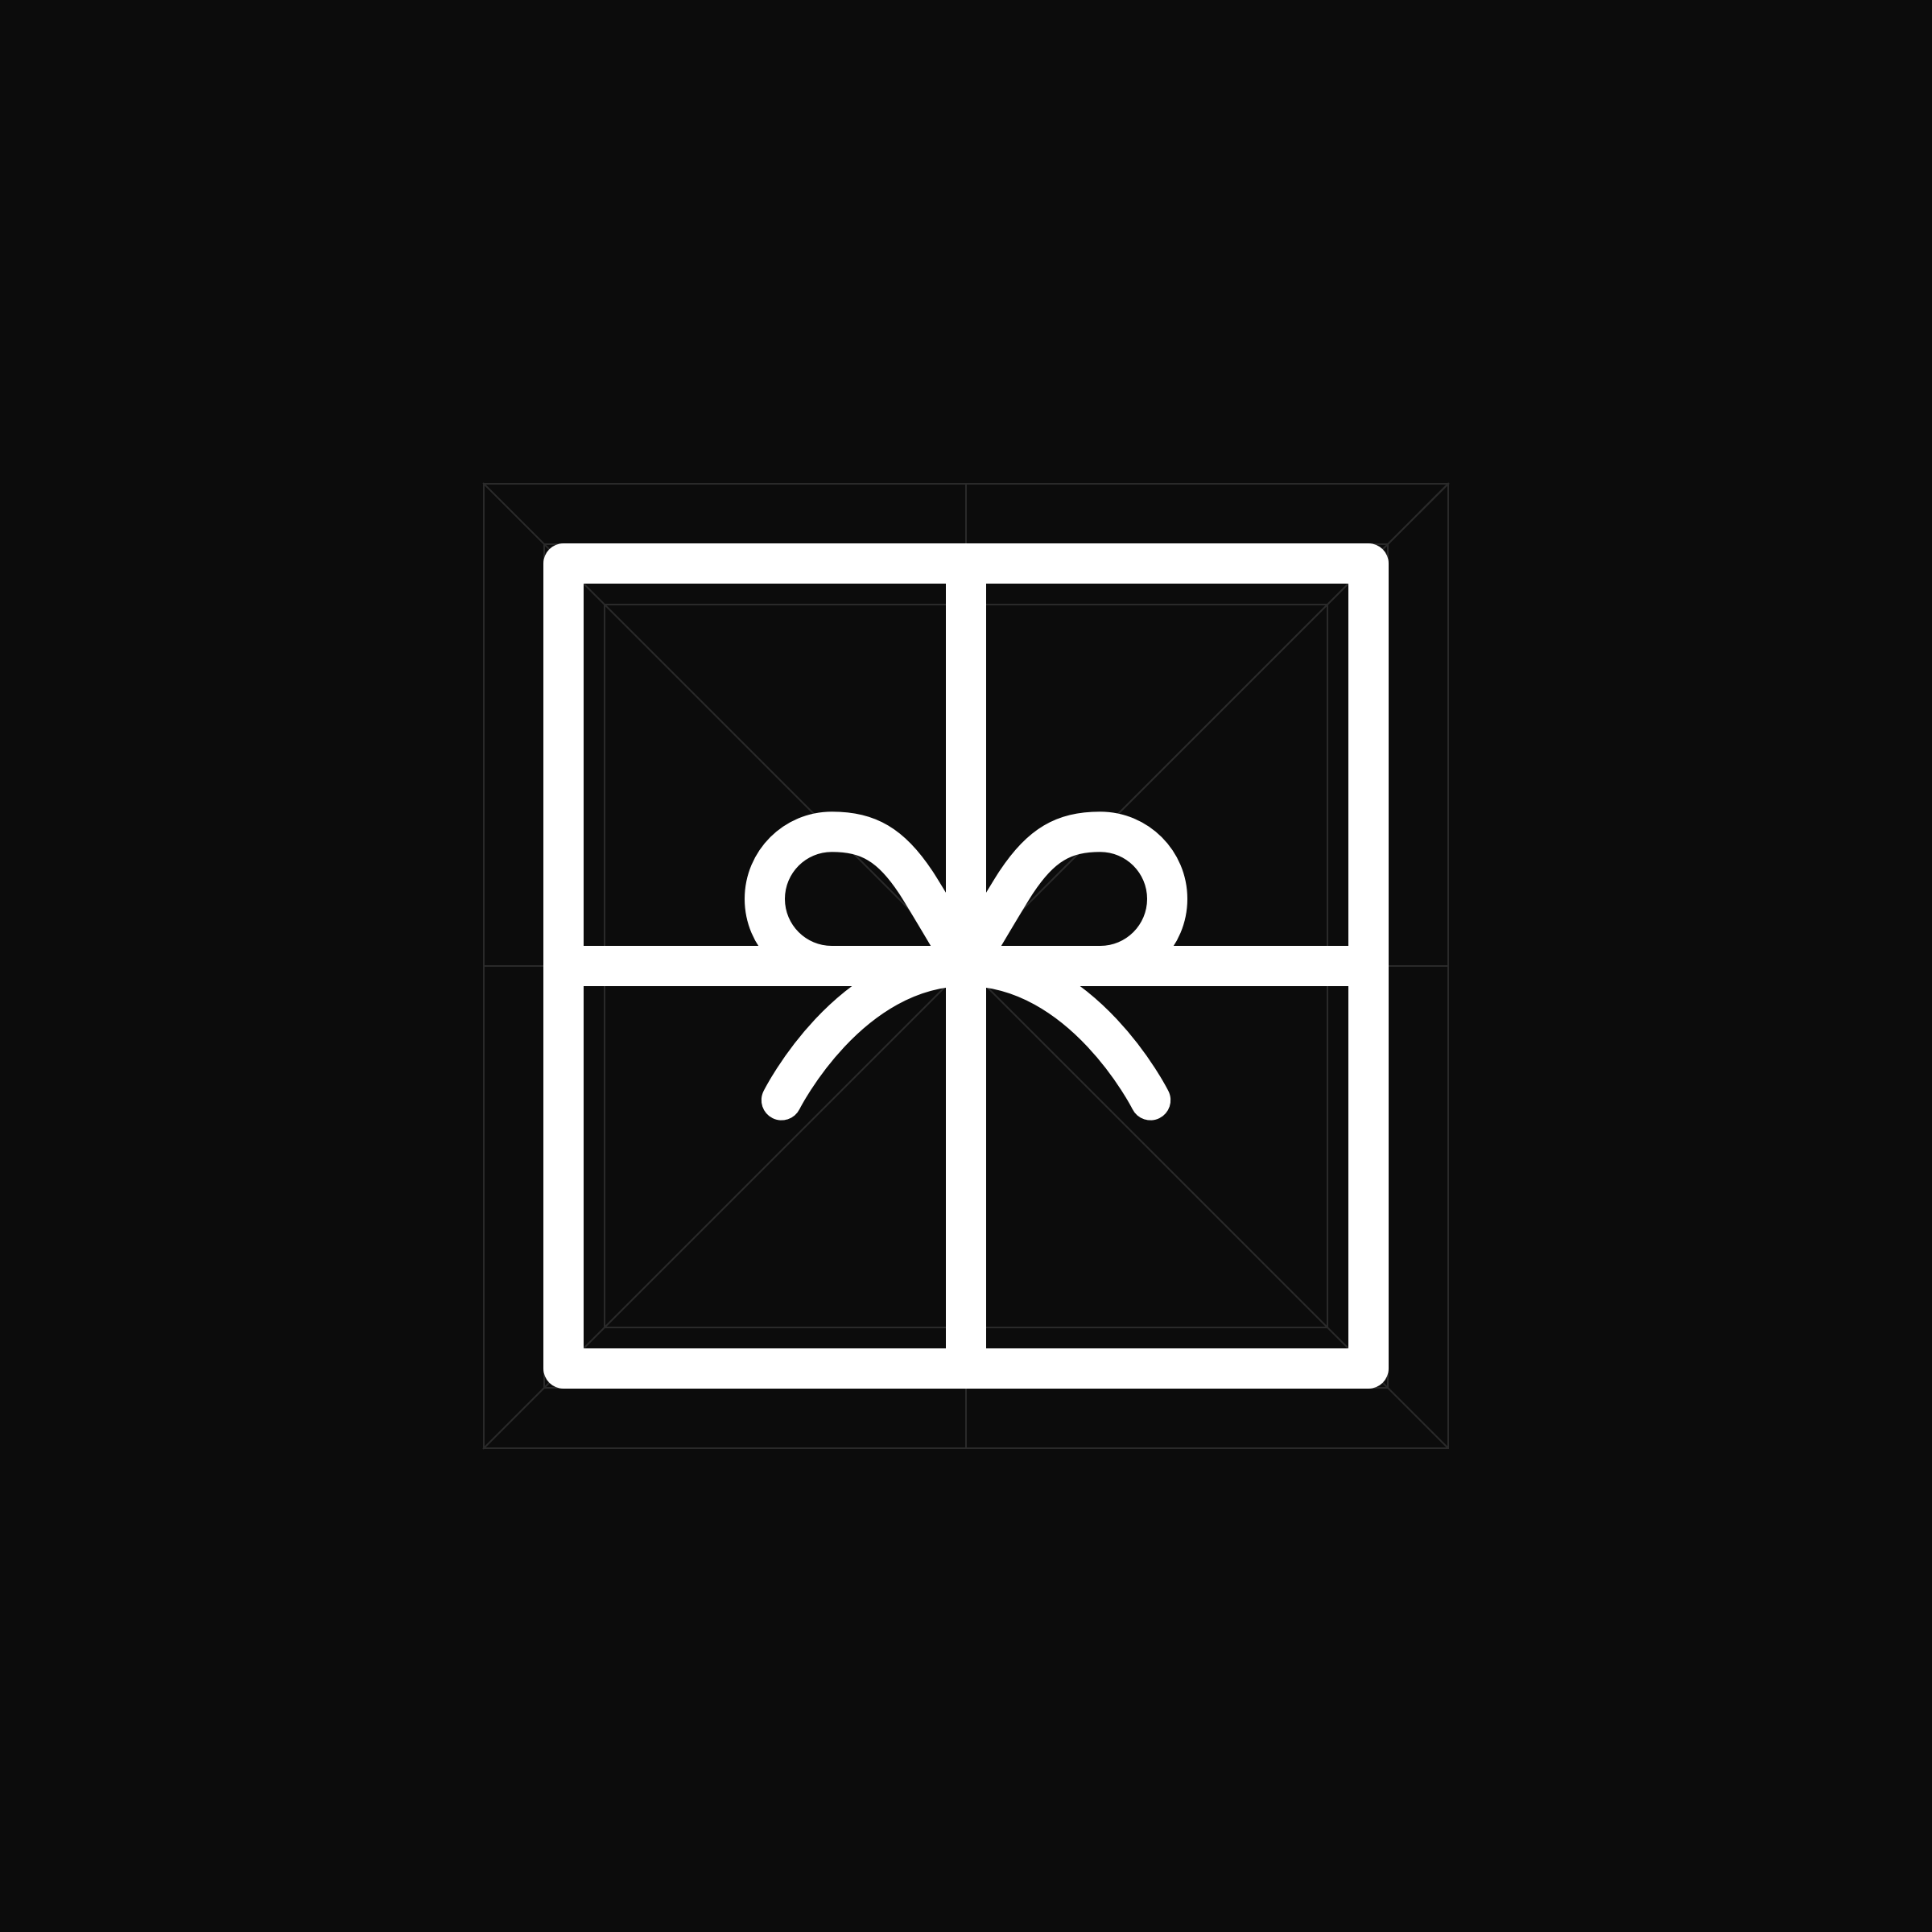 vzy-icon-gift-outline